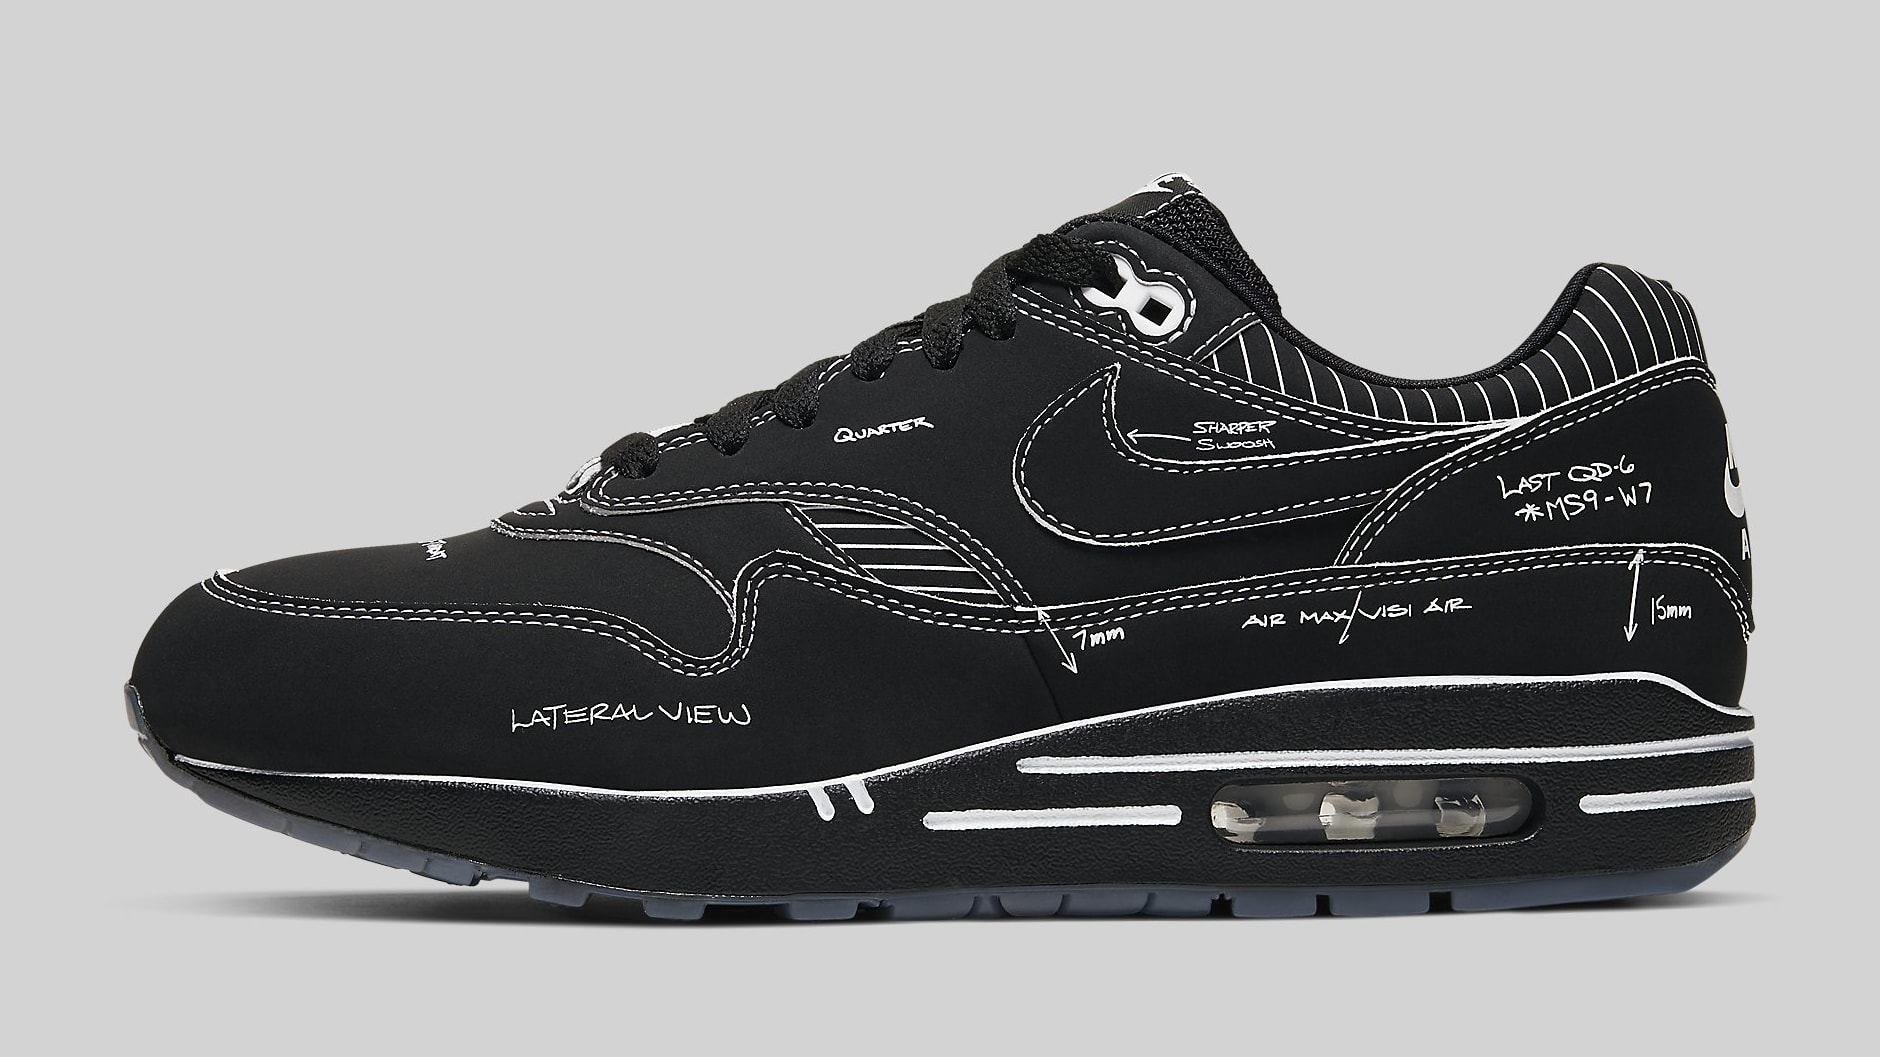 Nike Air Max 1 Tinker Hatfield Schematic Black Aug. 9, 2019